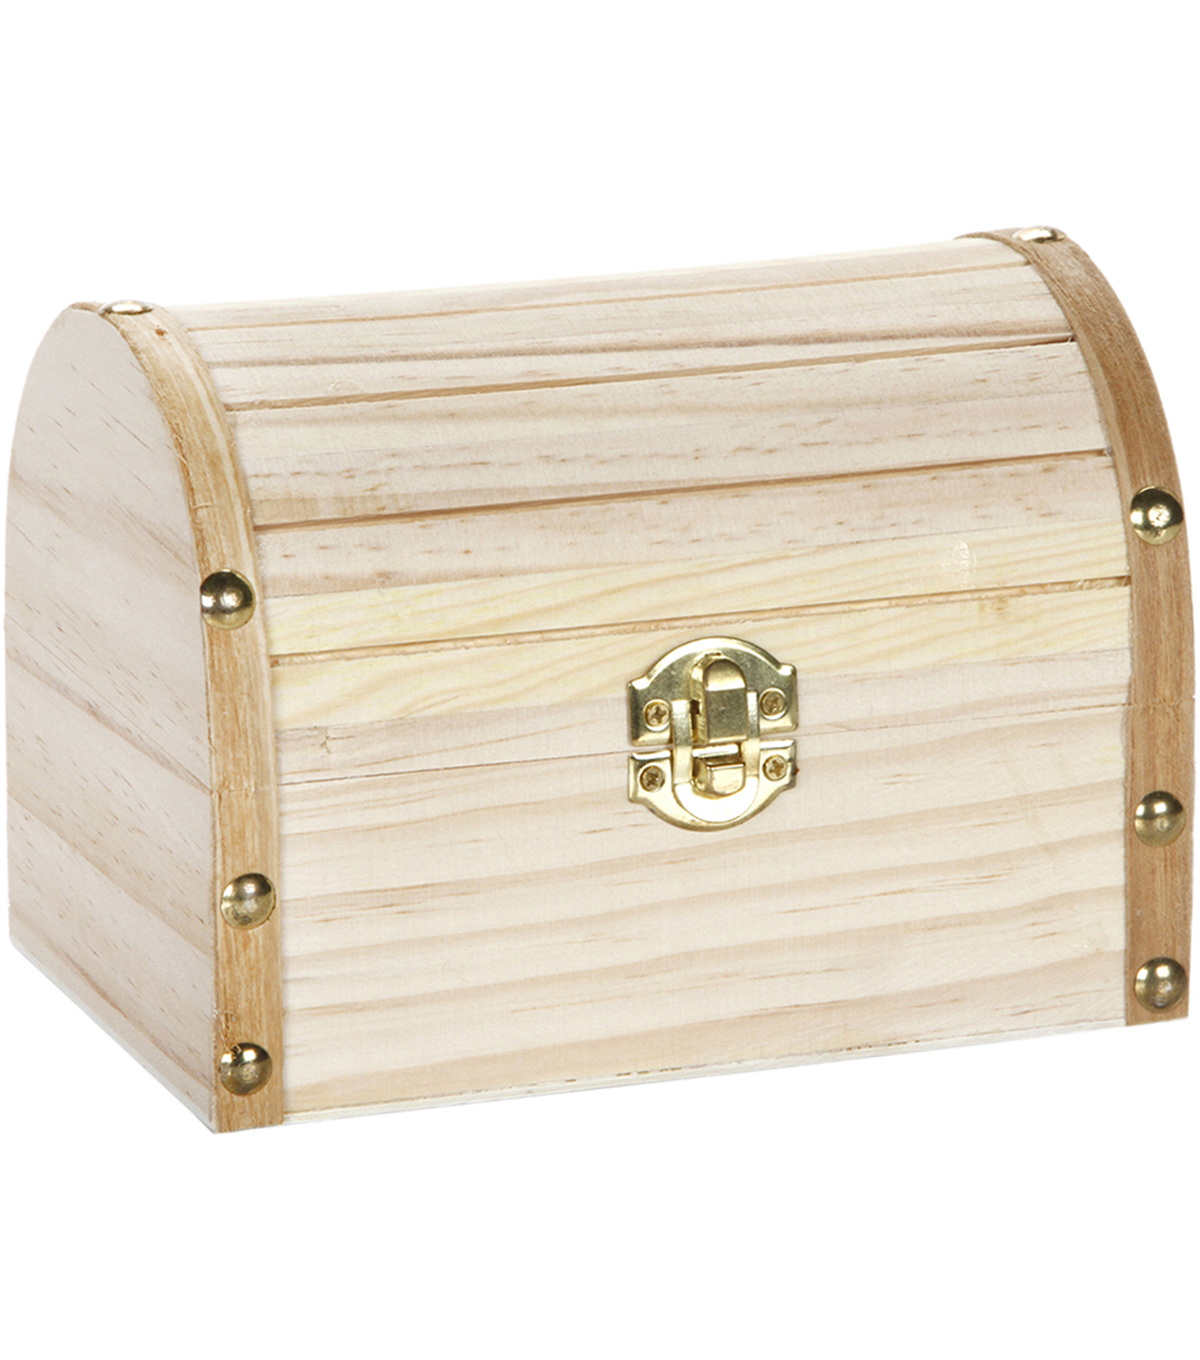 "Wood Chest Hinged W/Clasp 6.1""X4.1""X4.3"""